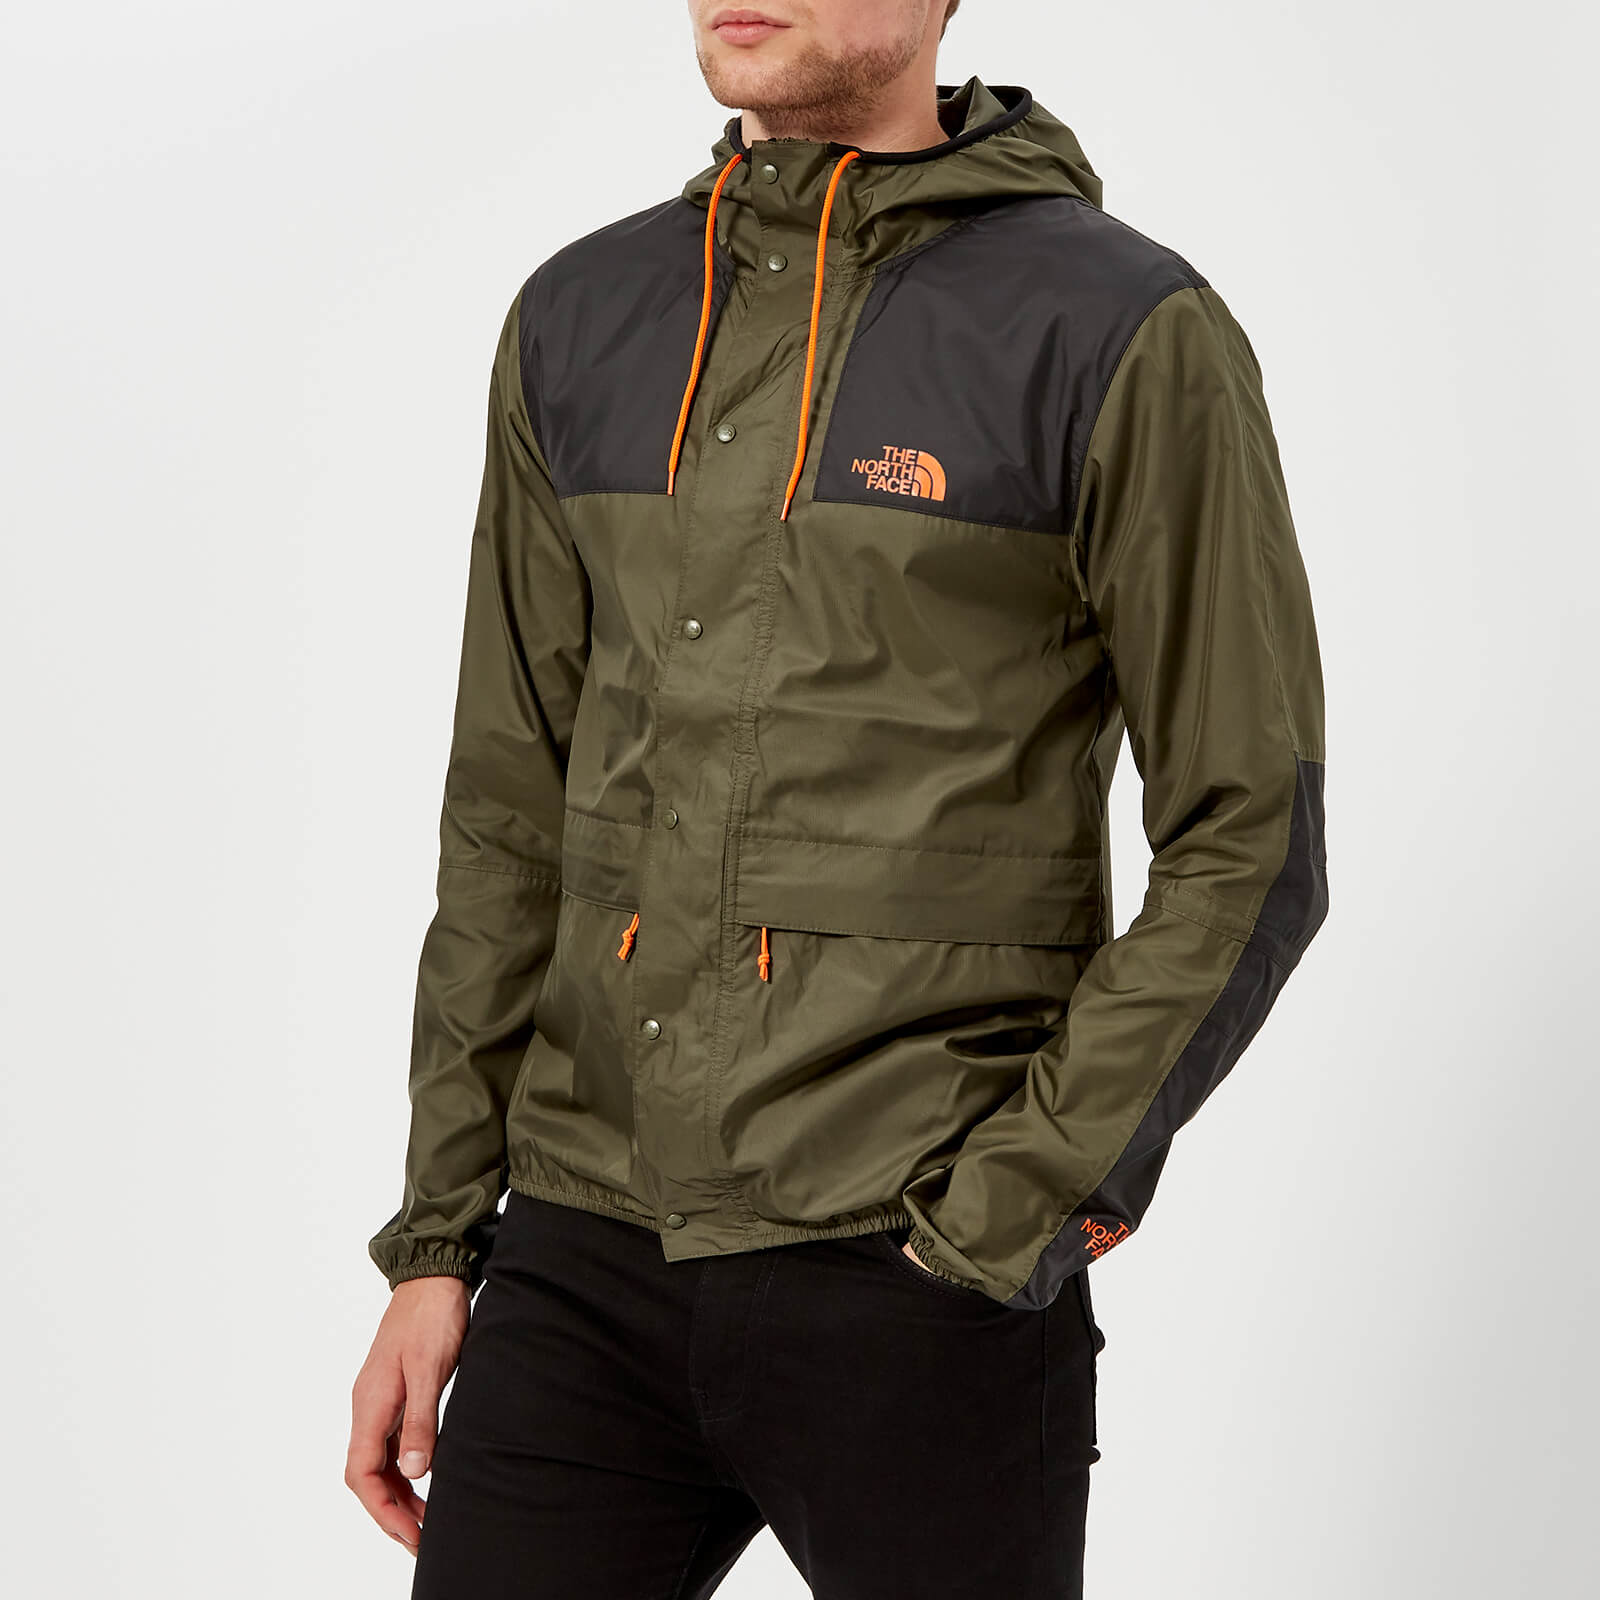 8166b842c The North Face Men's Mountain 1985 Seasonal Celebration Jacket - New Taupe  Green/TNF Black